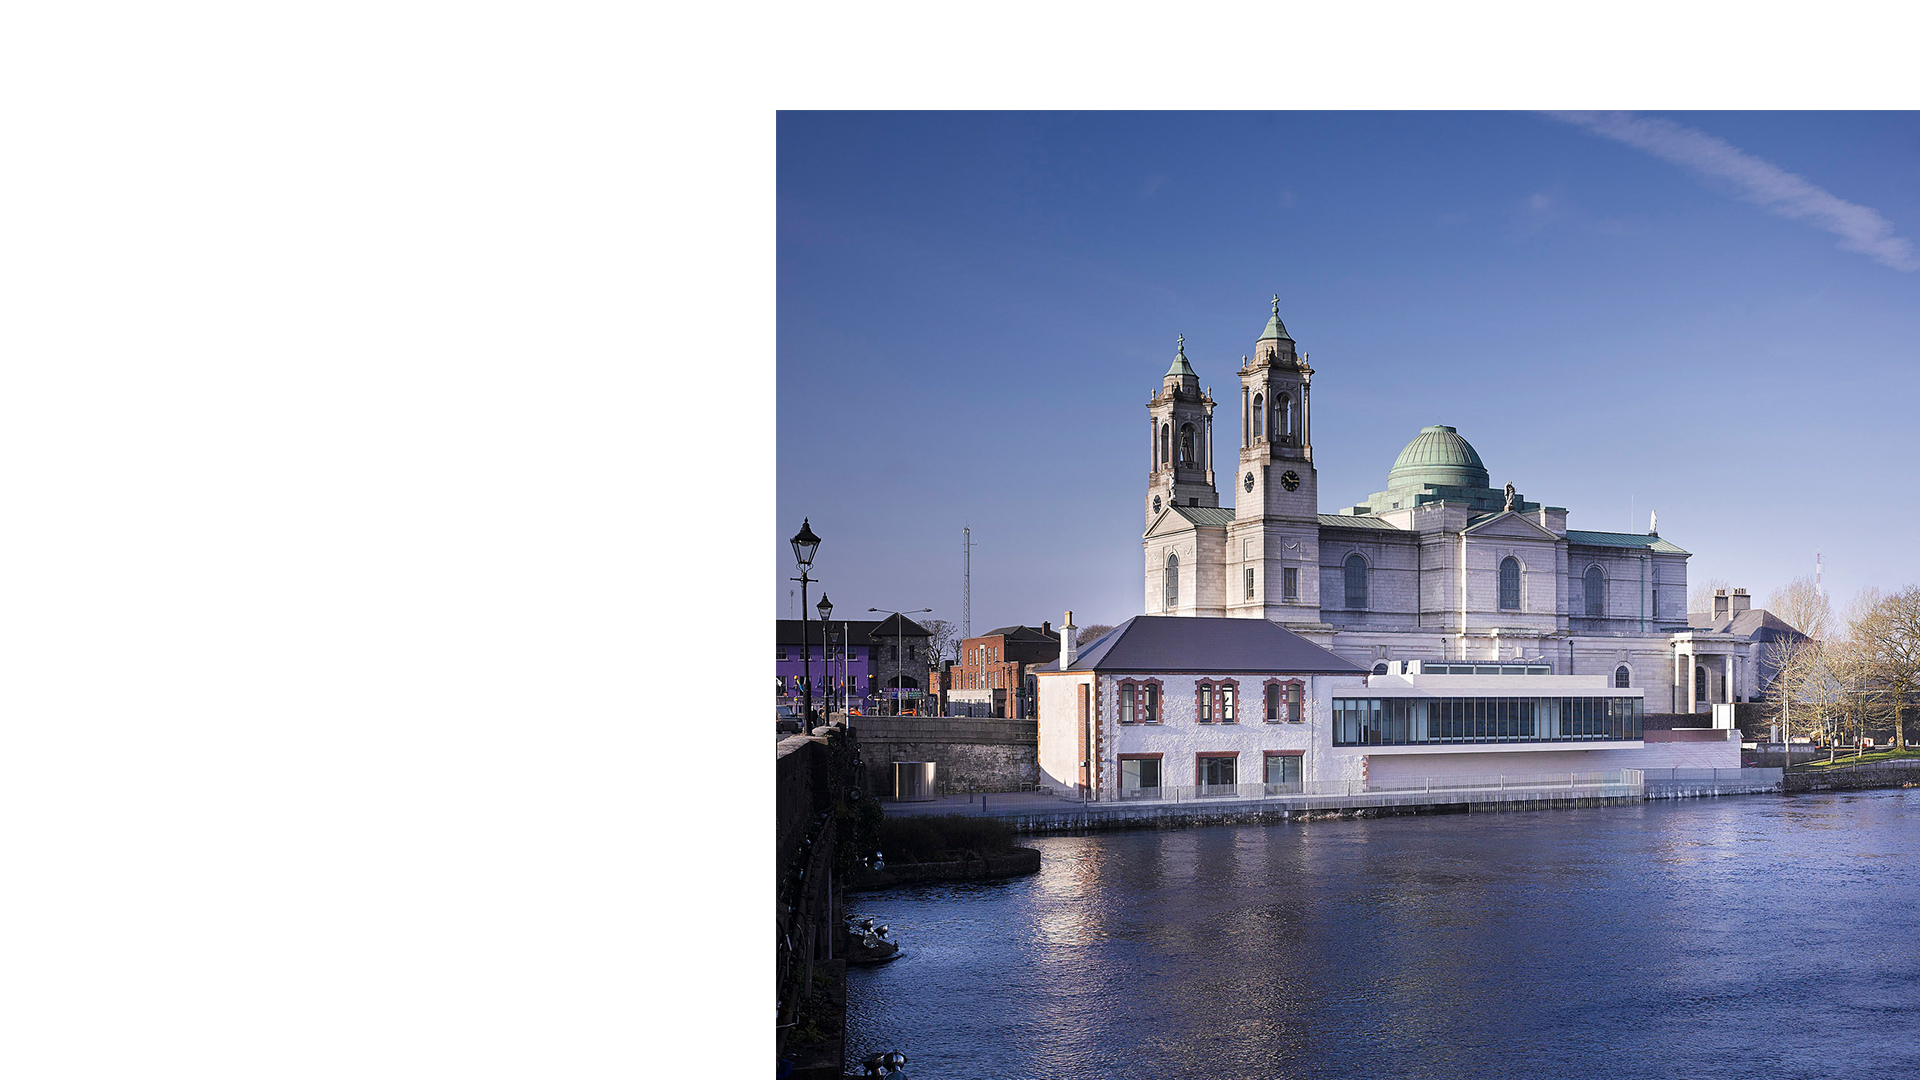 The Luan Gallery viewed from the bridge across the River Shannon, designed by Keith Williams Architects